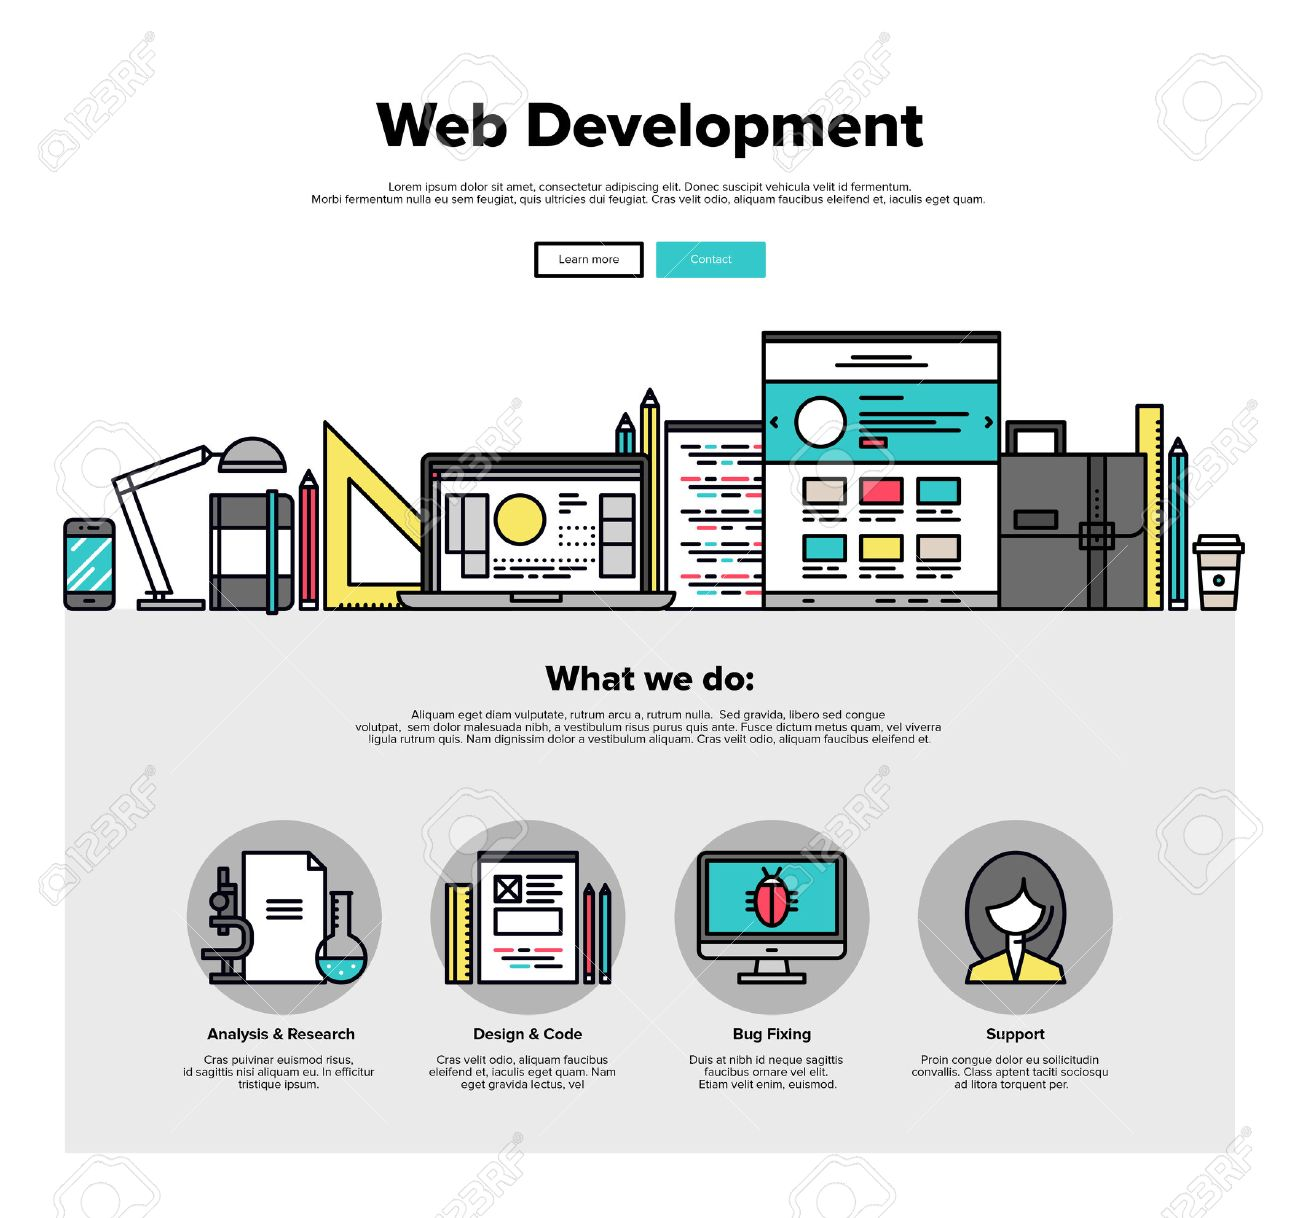 One page web design template with thin line icons of web studio services. Website optimization, SEO analysis, bug testing and fixing. Flat design graphic hero image concept, website elements layout. Stock Vector - 46612088